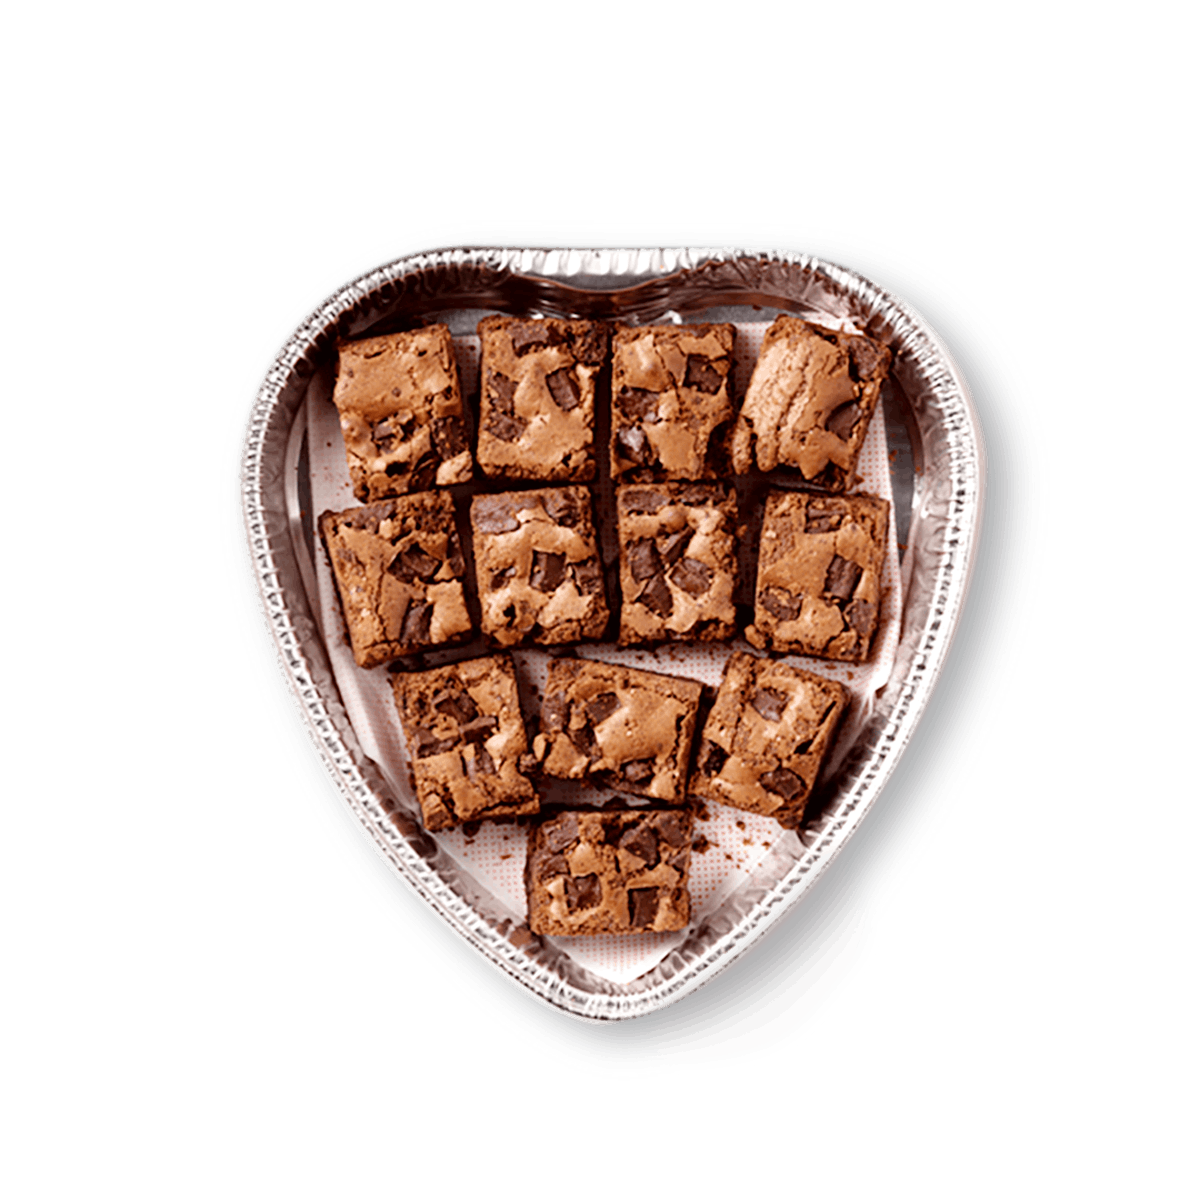 Chick-fil-A's heart-shaped nugget trays also come in a sweet option, like this 12-count of brownies for $11.50.